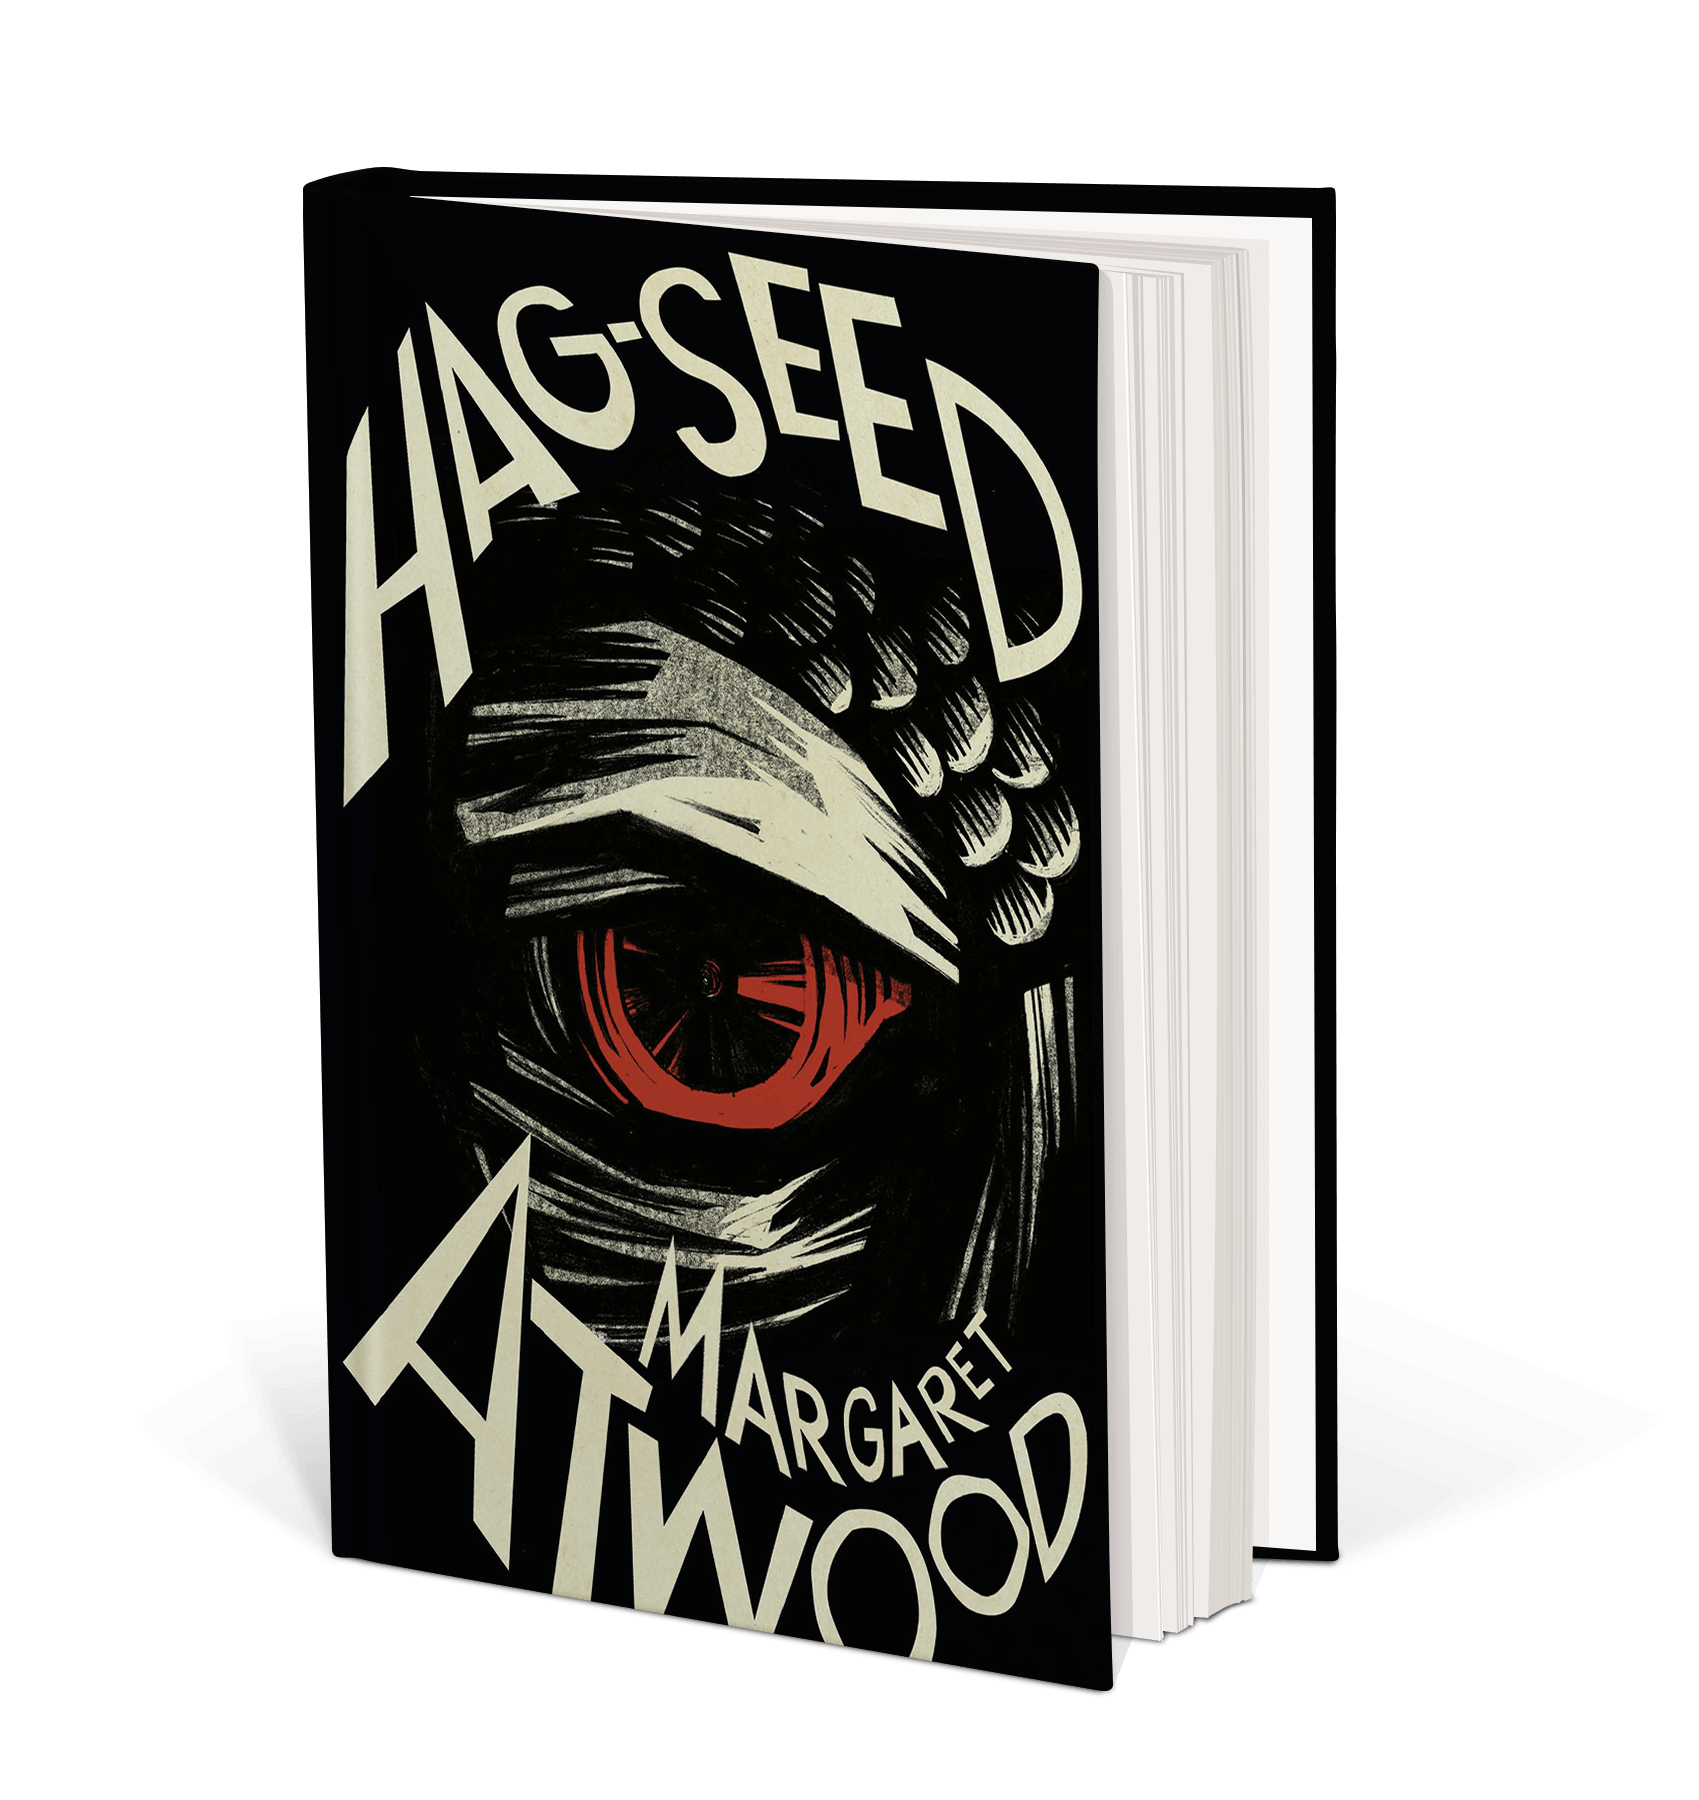 Cover art for Hag-Seed